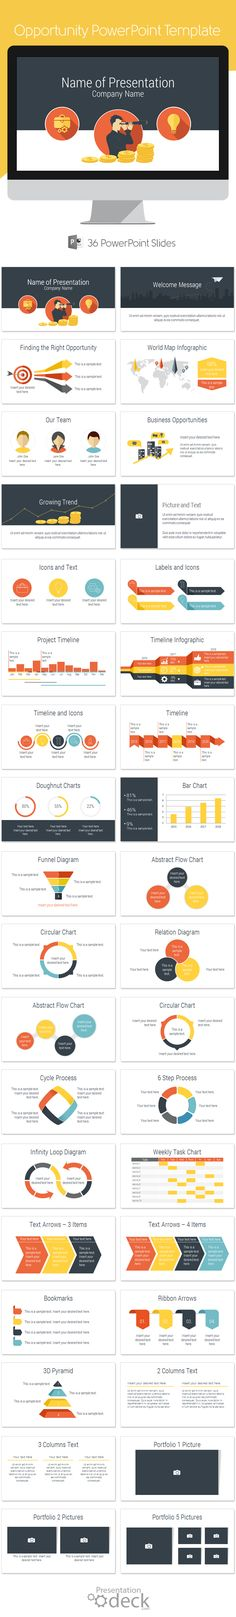 Opportunity PowerPoint template in flat design style with 36 pre-designed slides.  This template is a great choice for presentations on growth opportunity, development and expansion, marketing, business solution, etc. #powerpoint #powerpoint_templates #presentations #business